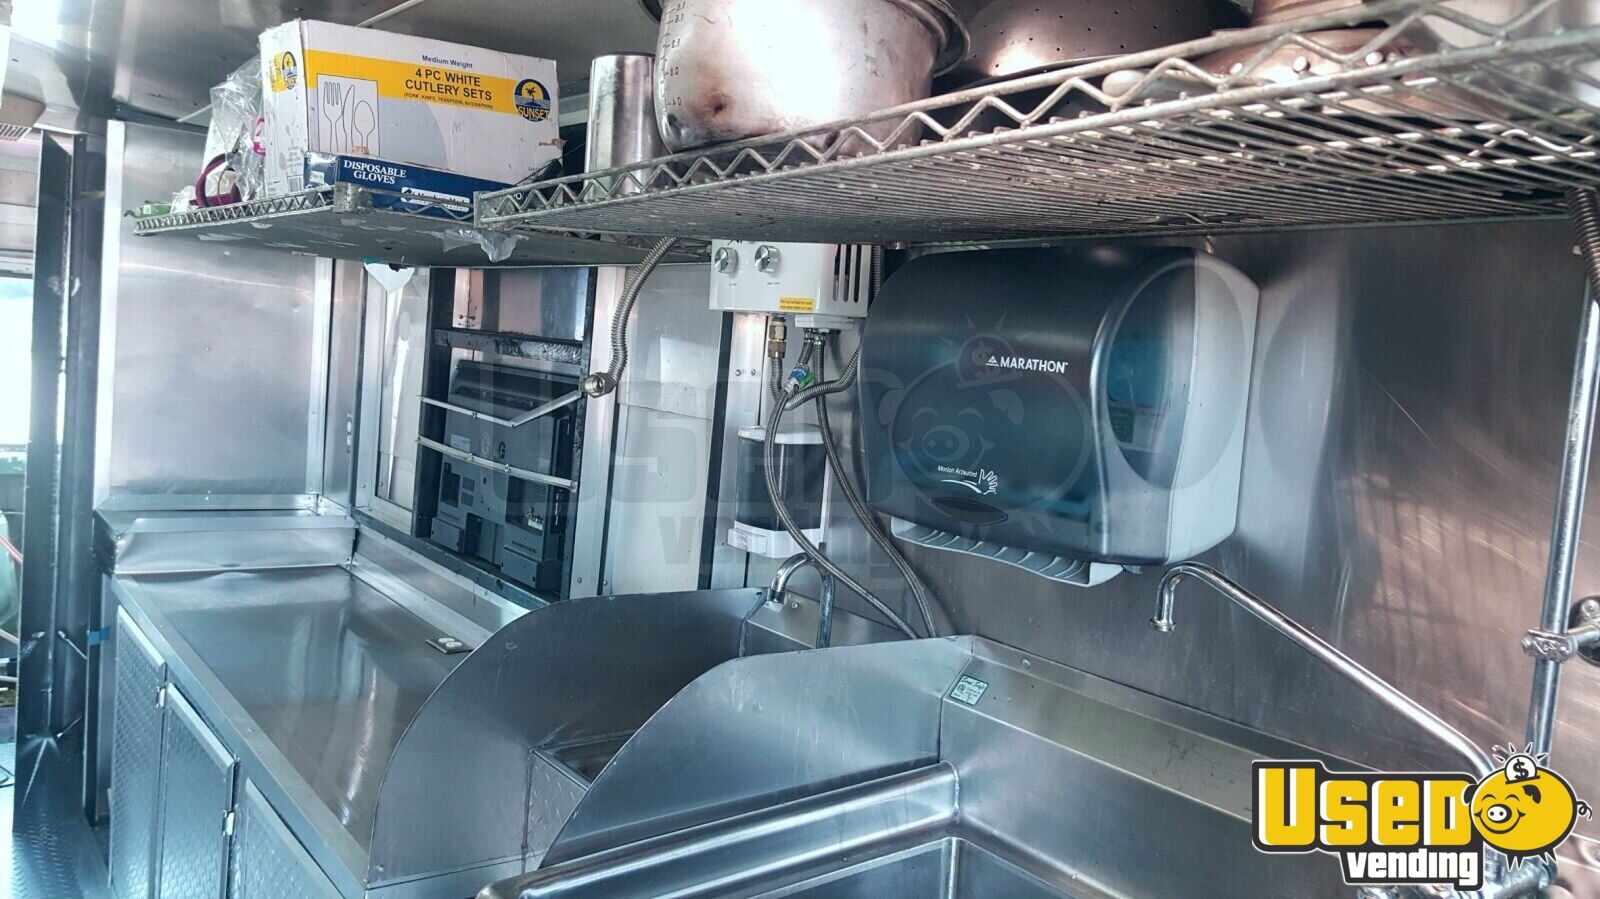 2013 Kenworth 370 Pizza Food Truck 27 Ohio Diesel Engine for Sale - 27